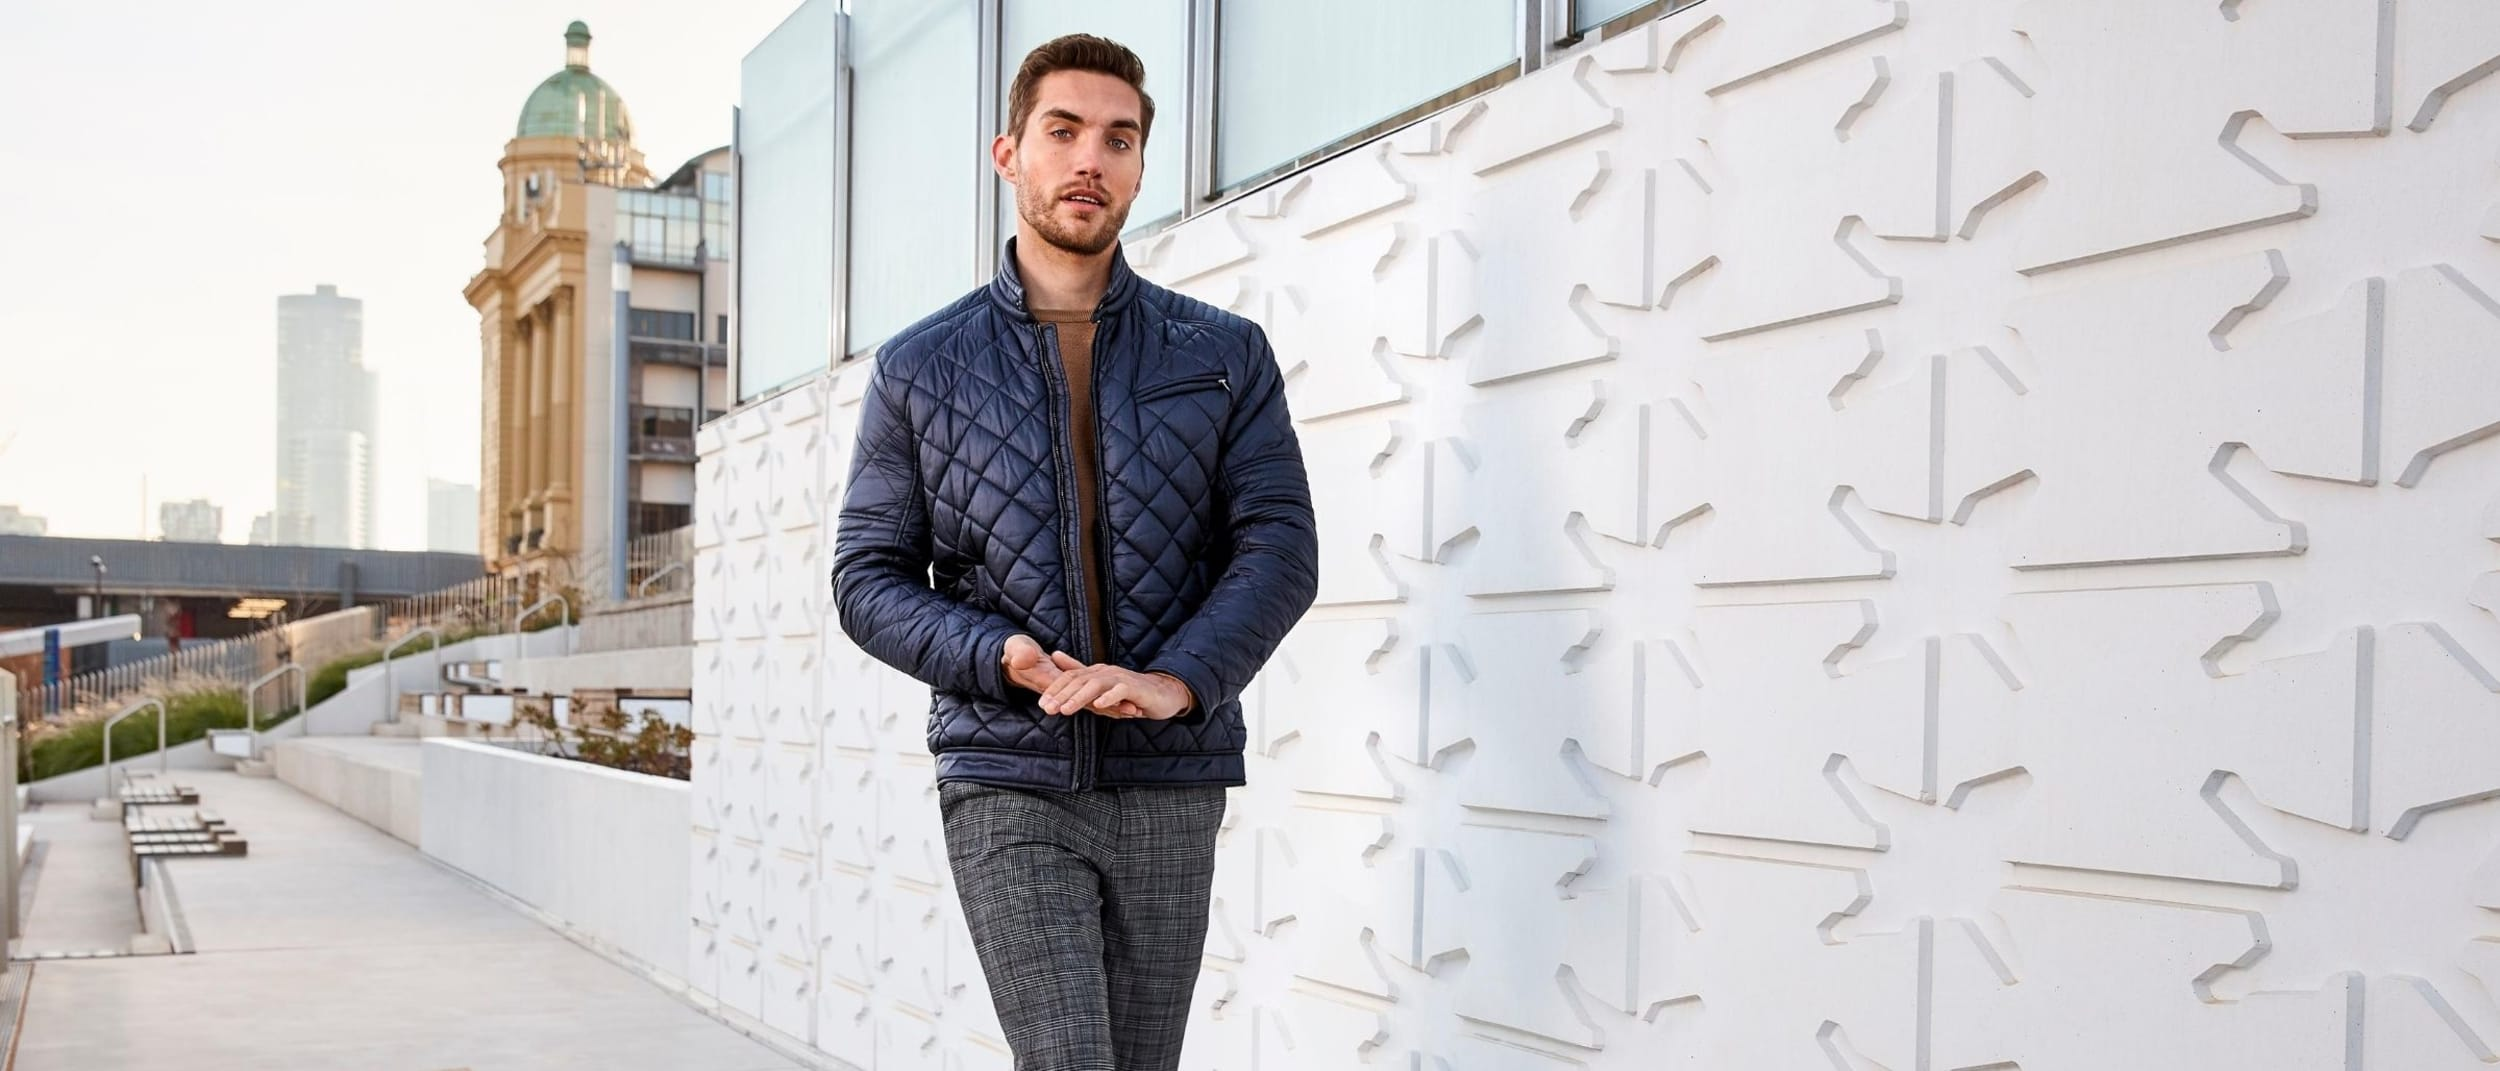 Politix: $100 off when you buy a top, bottom and jacket combo